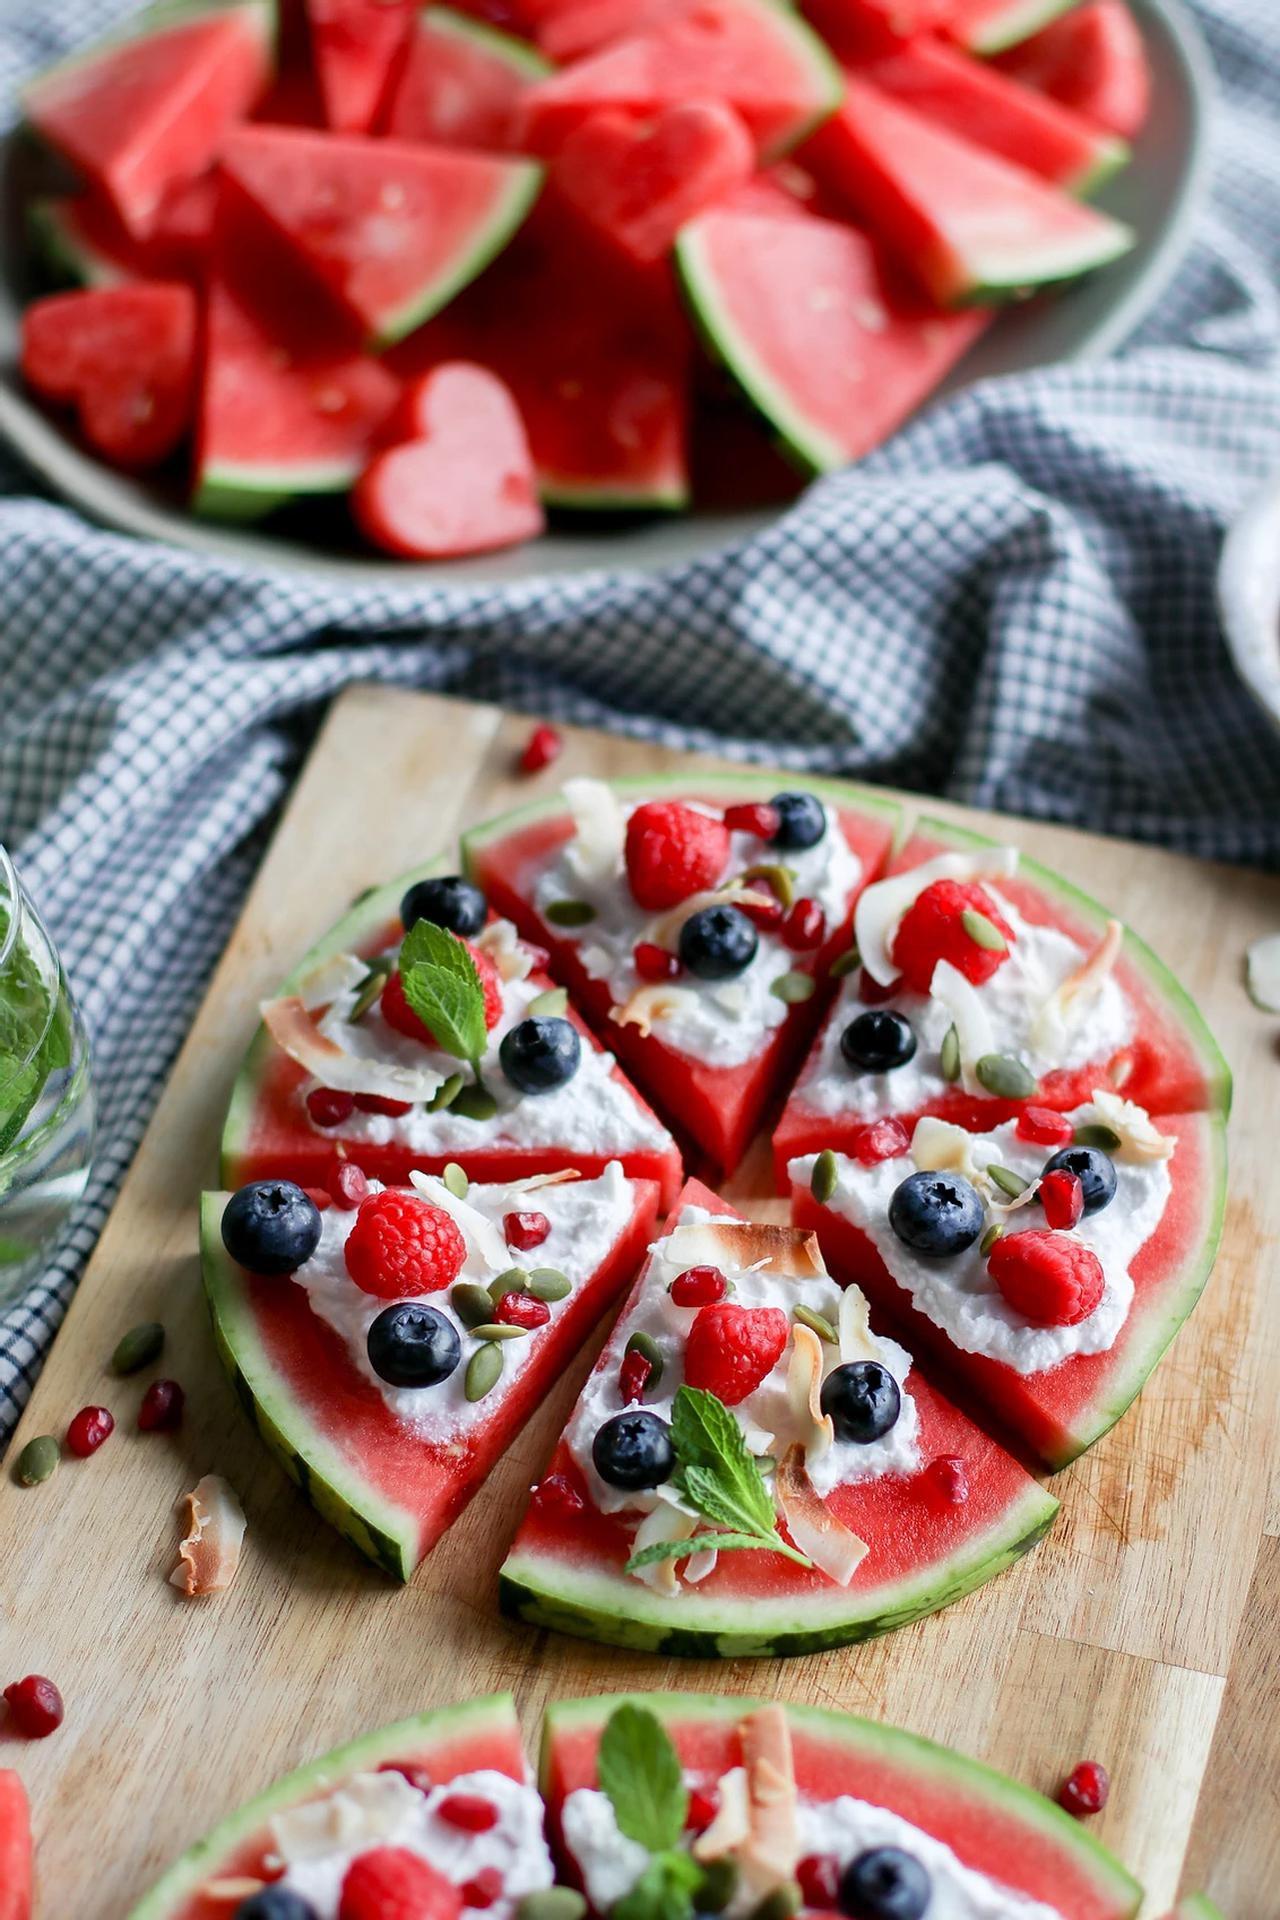 Main image of Watermelon Pizza